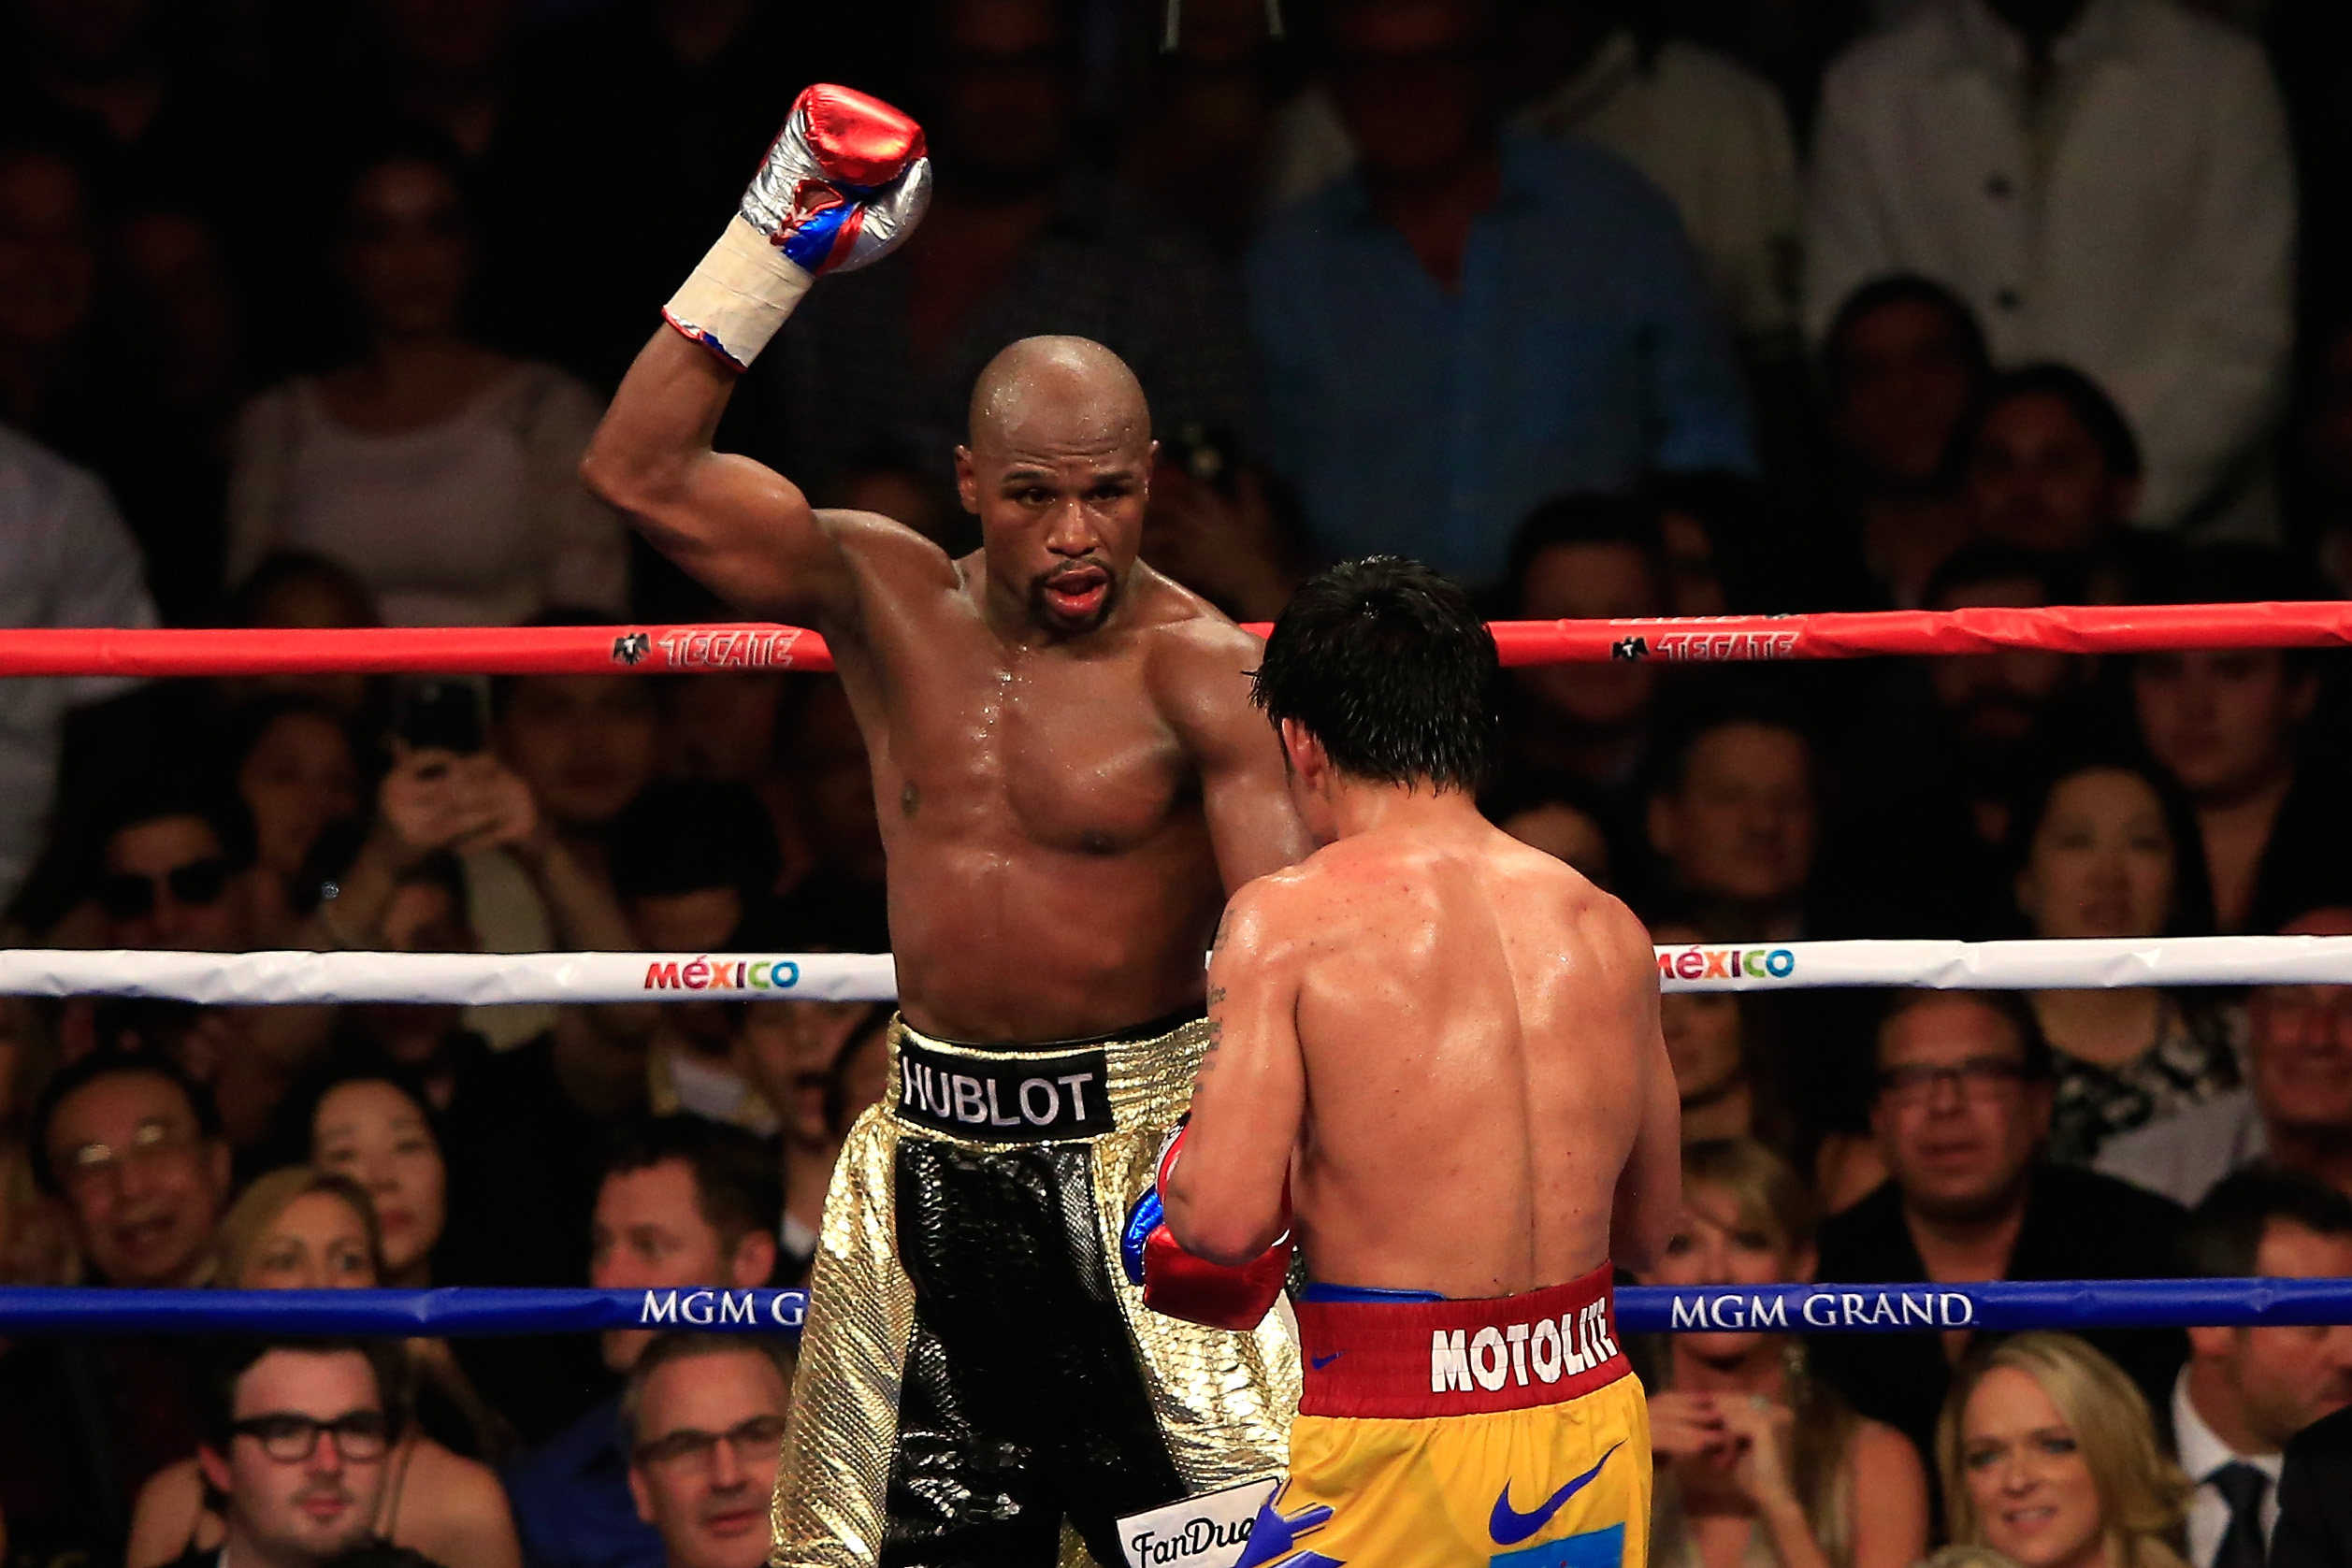 Floyd Mayweather vs Manny Pacquiao - Bad Left Hook